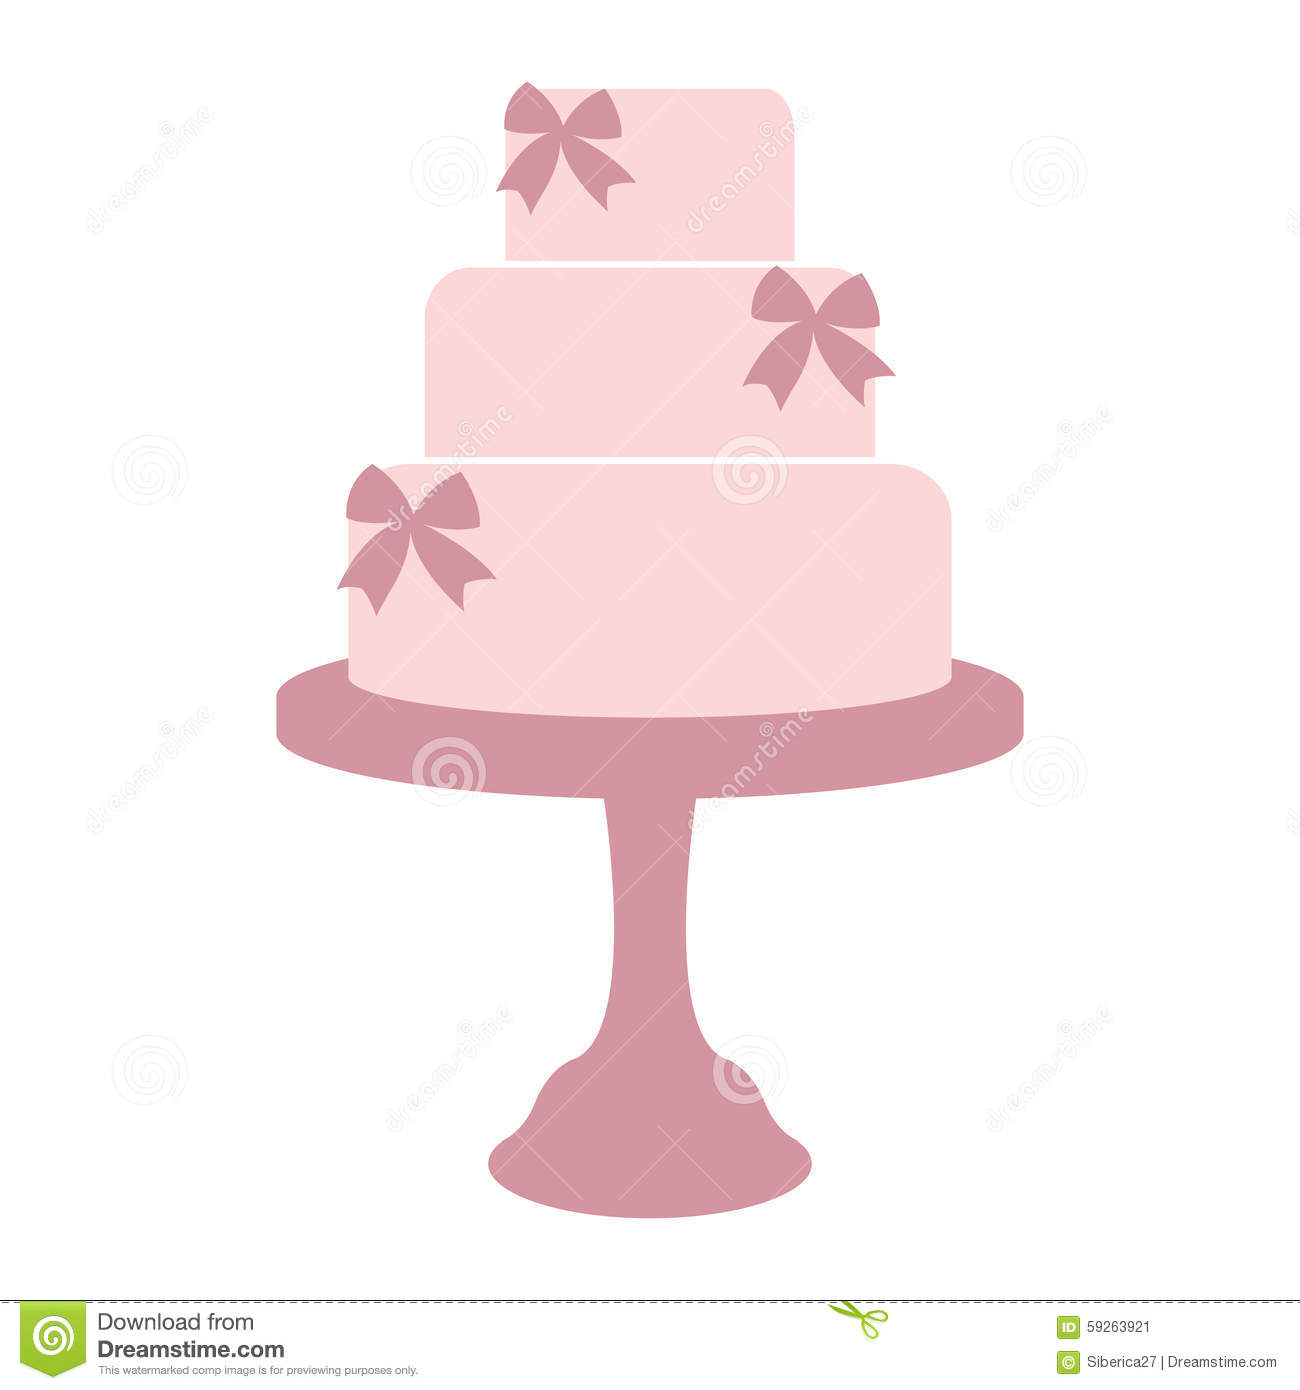 Template For Cake Design : Vintage Wedding Cake. Stock Vector - Image: 59263921